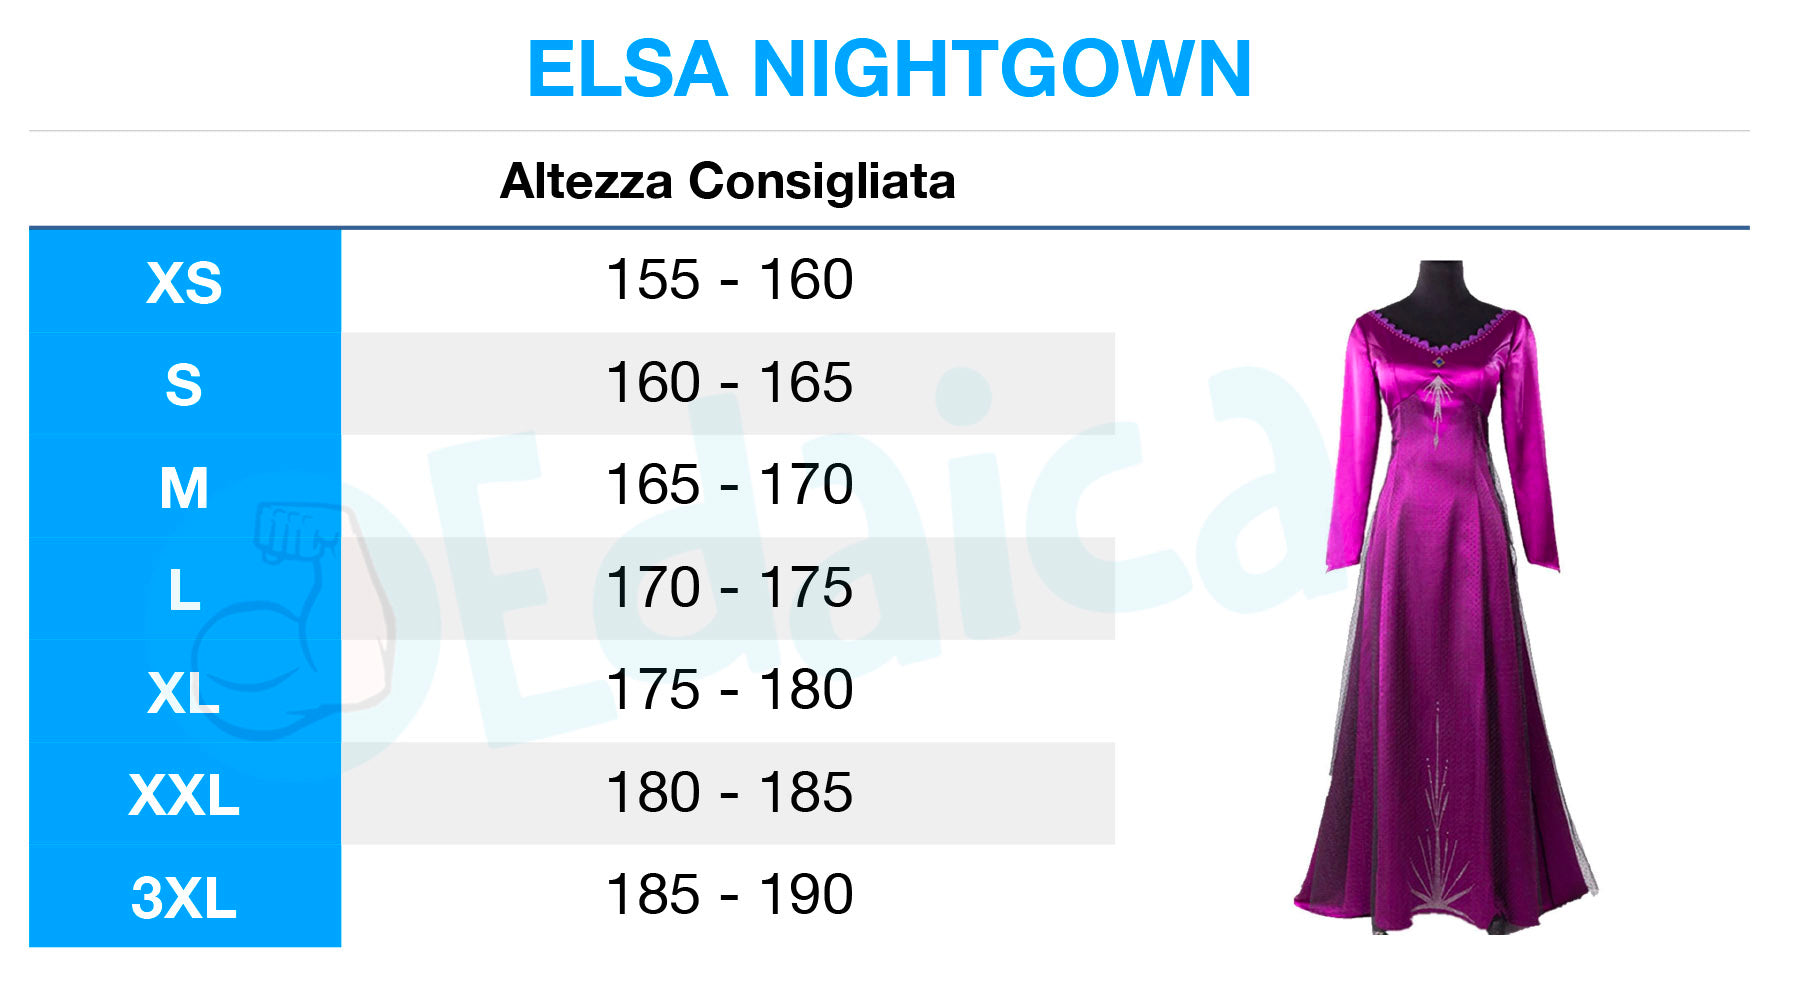 Elsa Nightgown